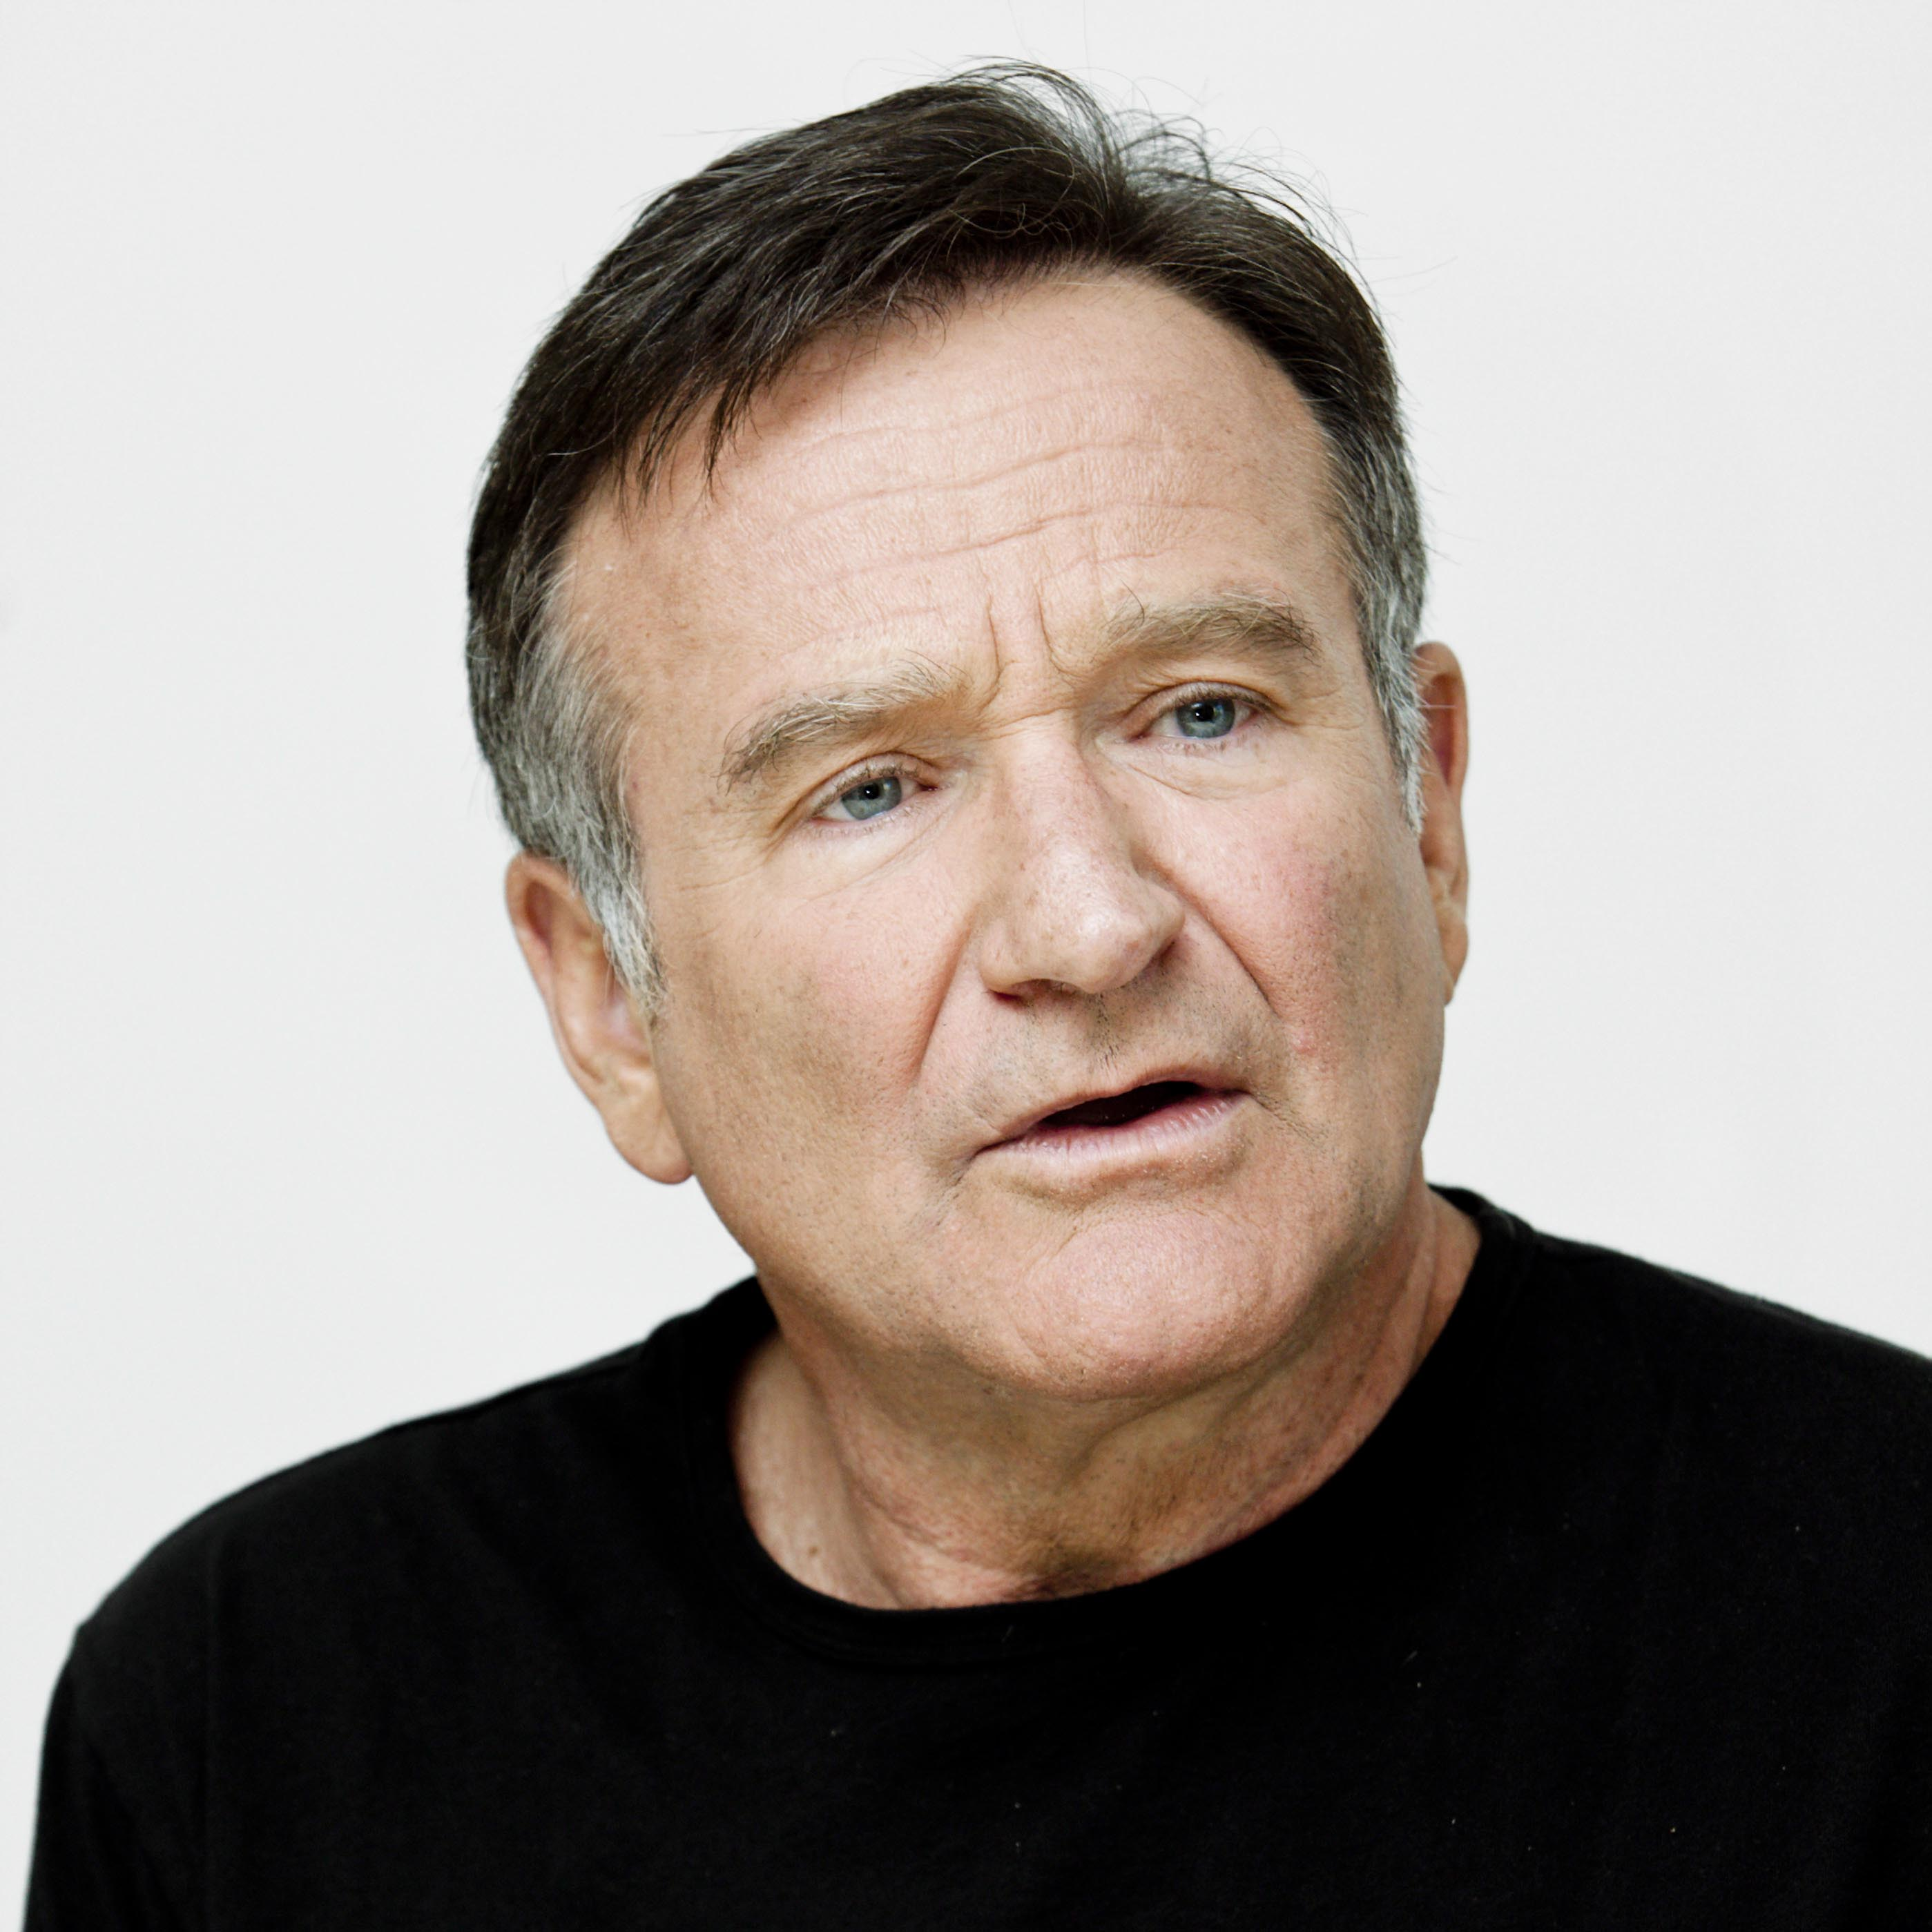 ROBIN WILLIAMS - ROBIN WILLIAMS Photo (32089775) - Fanpop